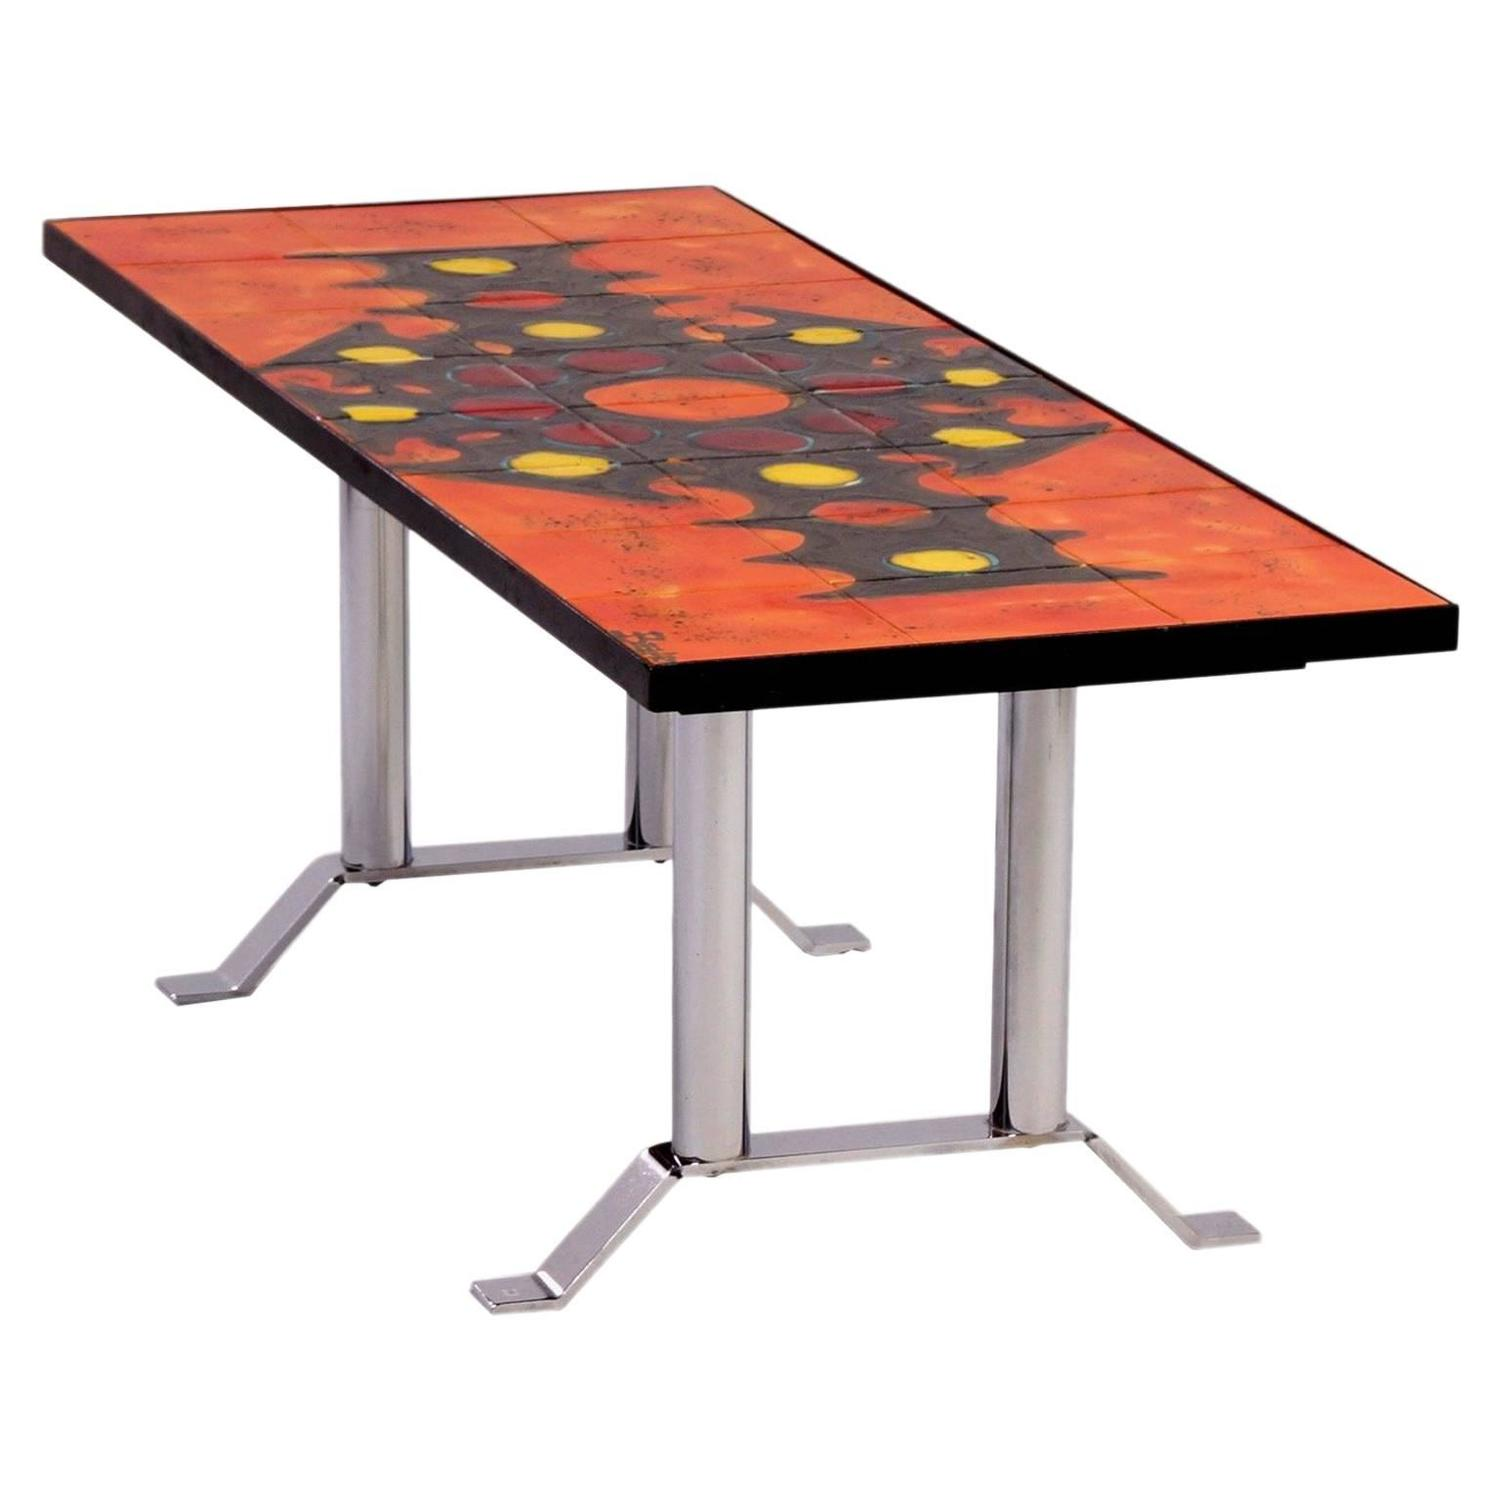 Hand Painted Tile Coffee Table By Belarti 1960s Orange For Sale At 1stdibs